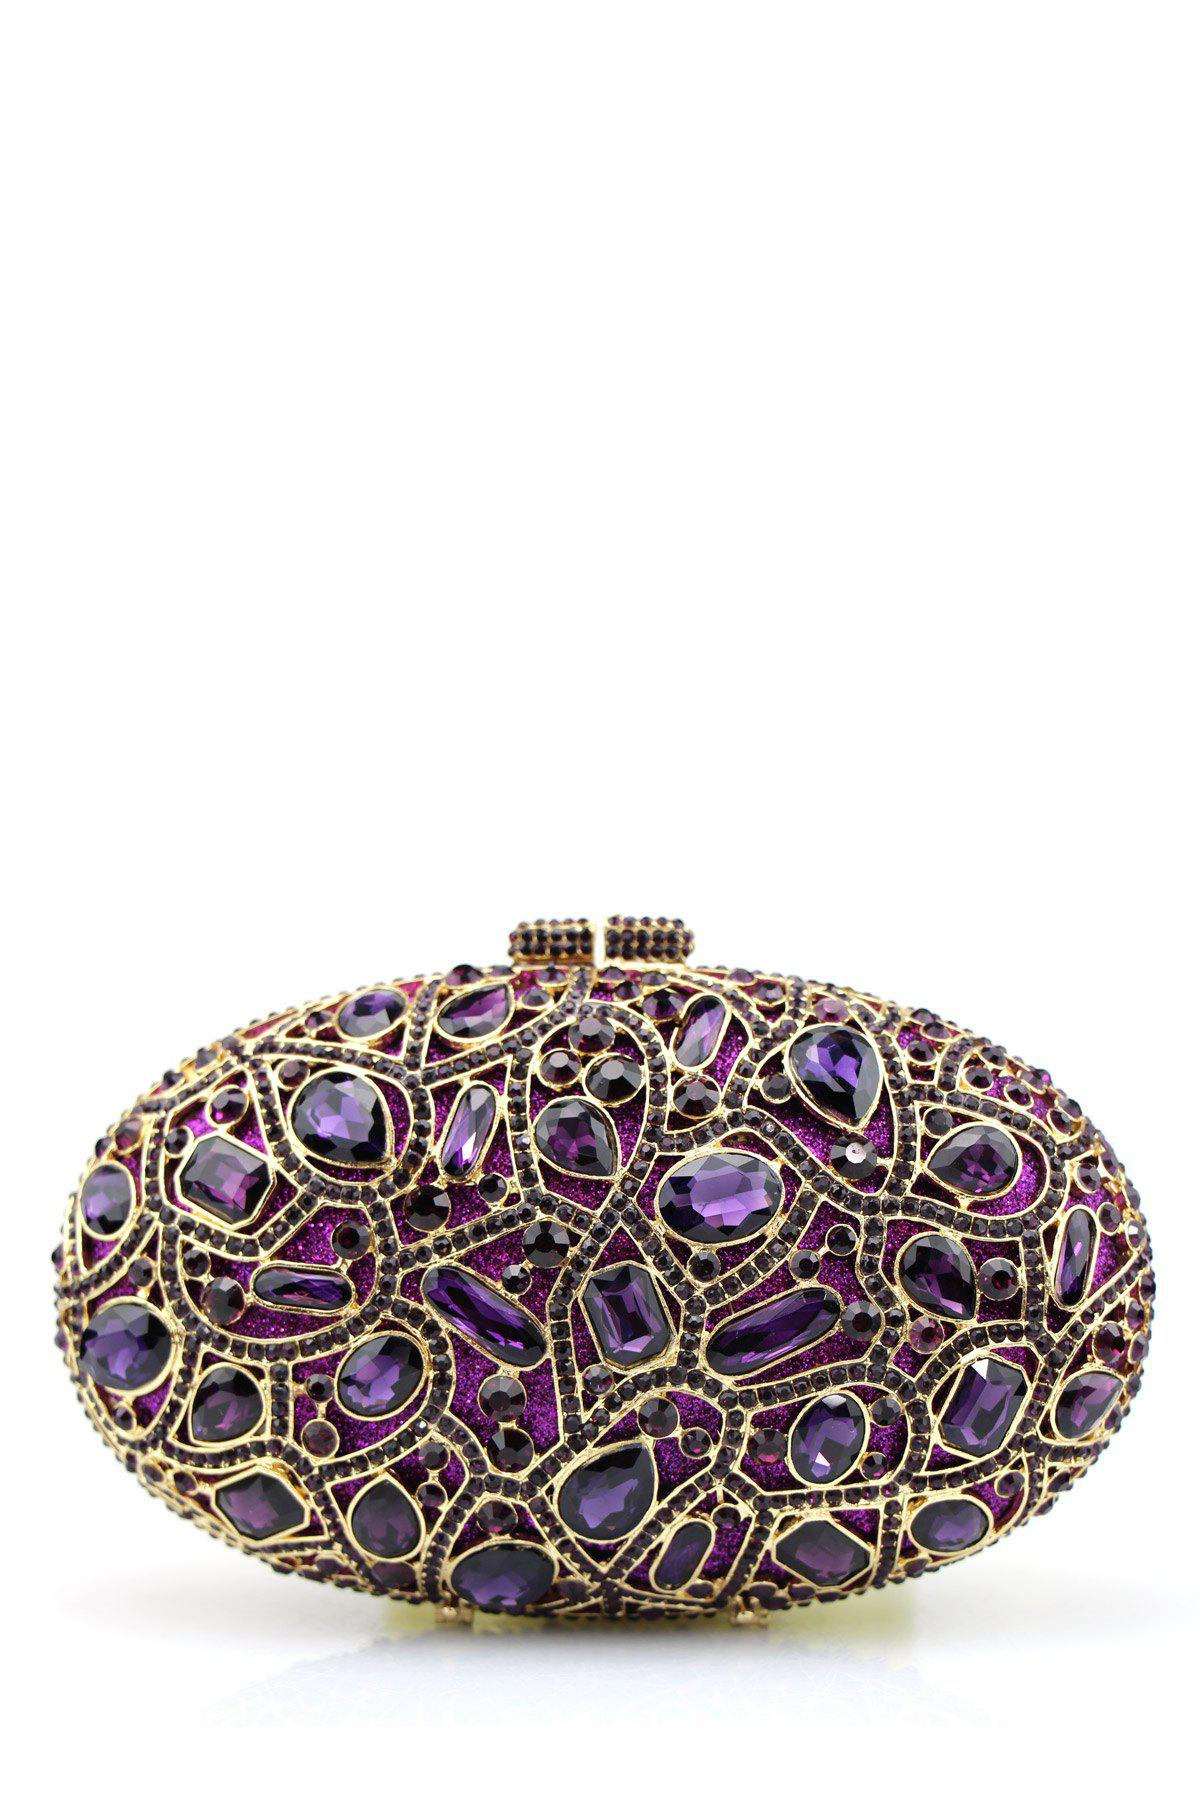 Best Oval Rhinestone Evening Bag